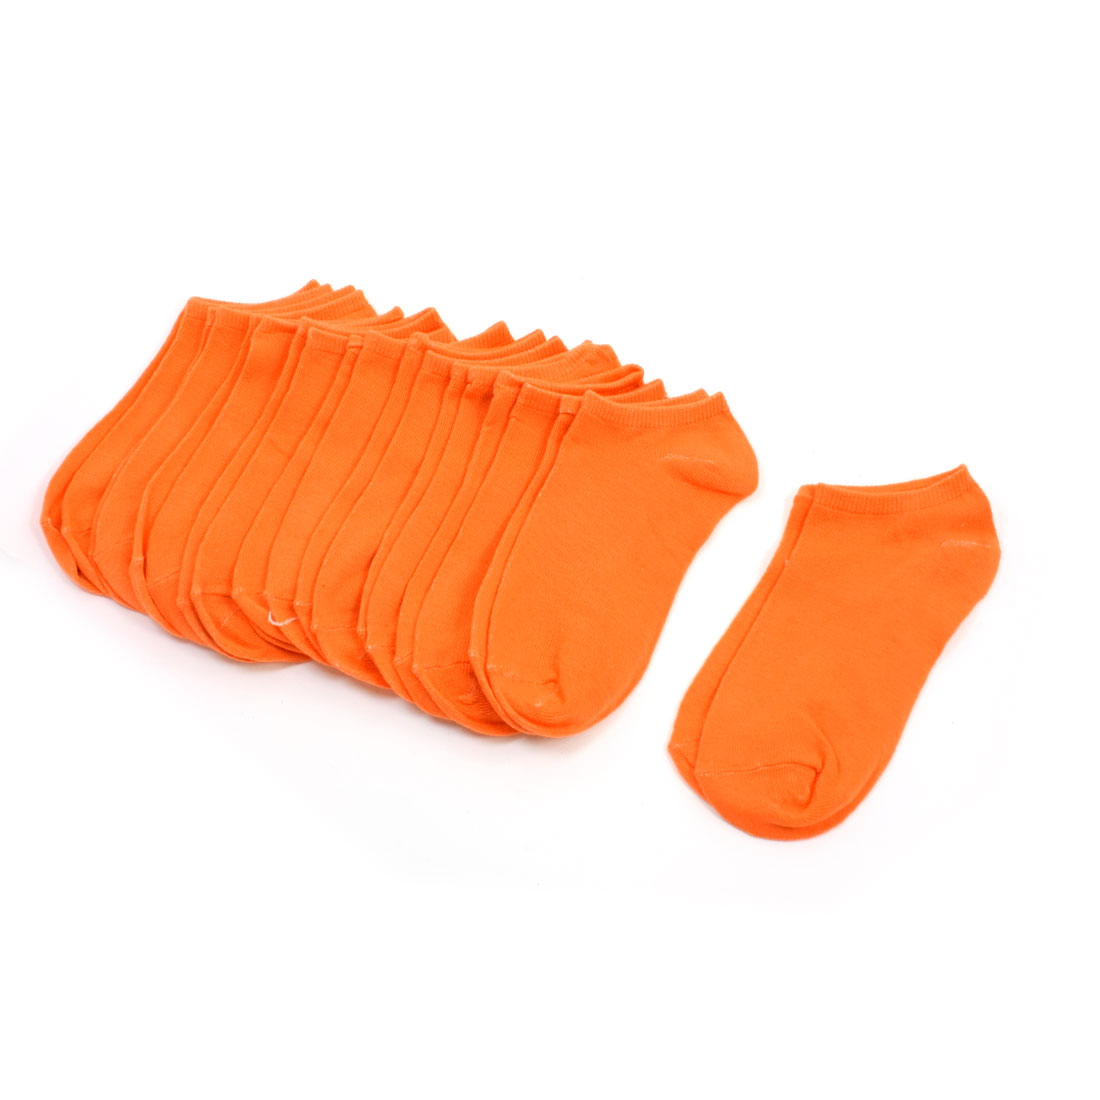 10 Pairs Girls Stretchy Footsie Gently Low Cut Hosiery Socks Orange